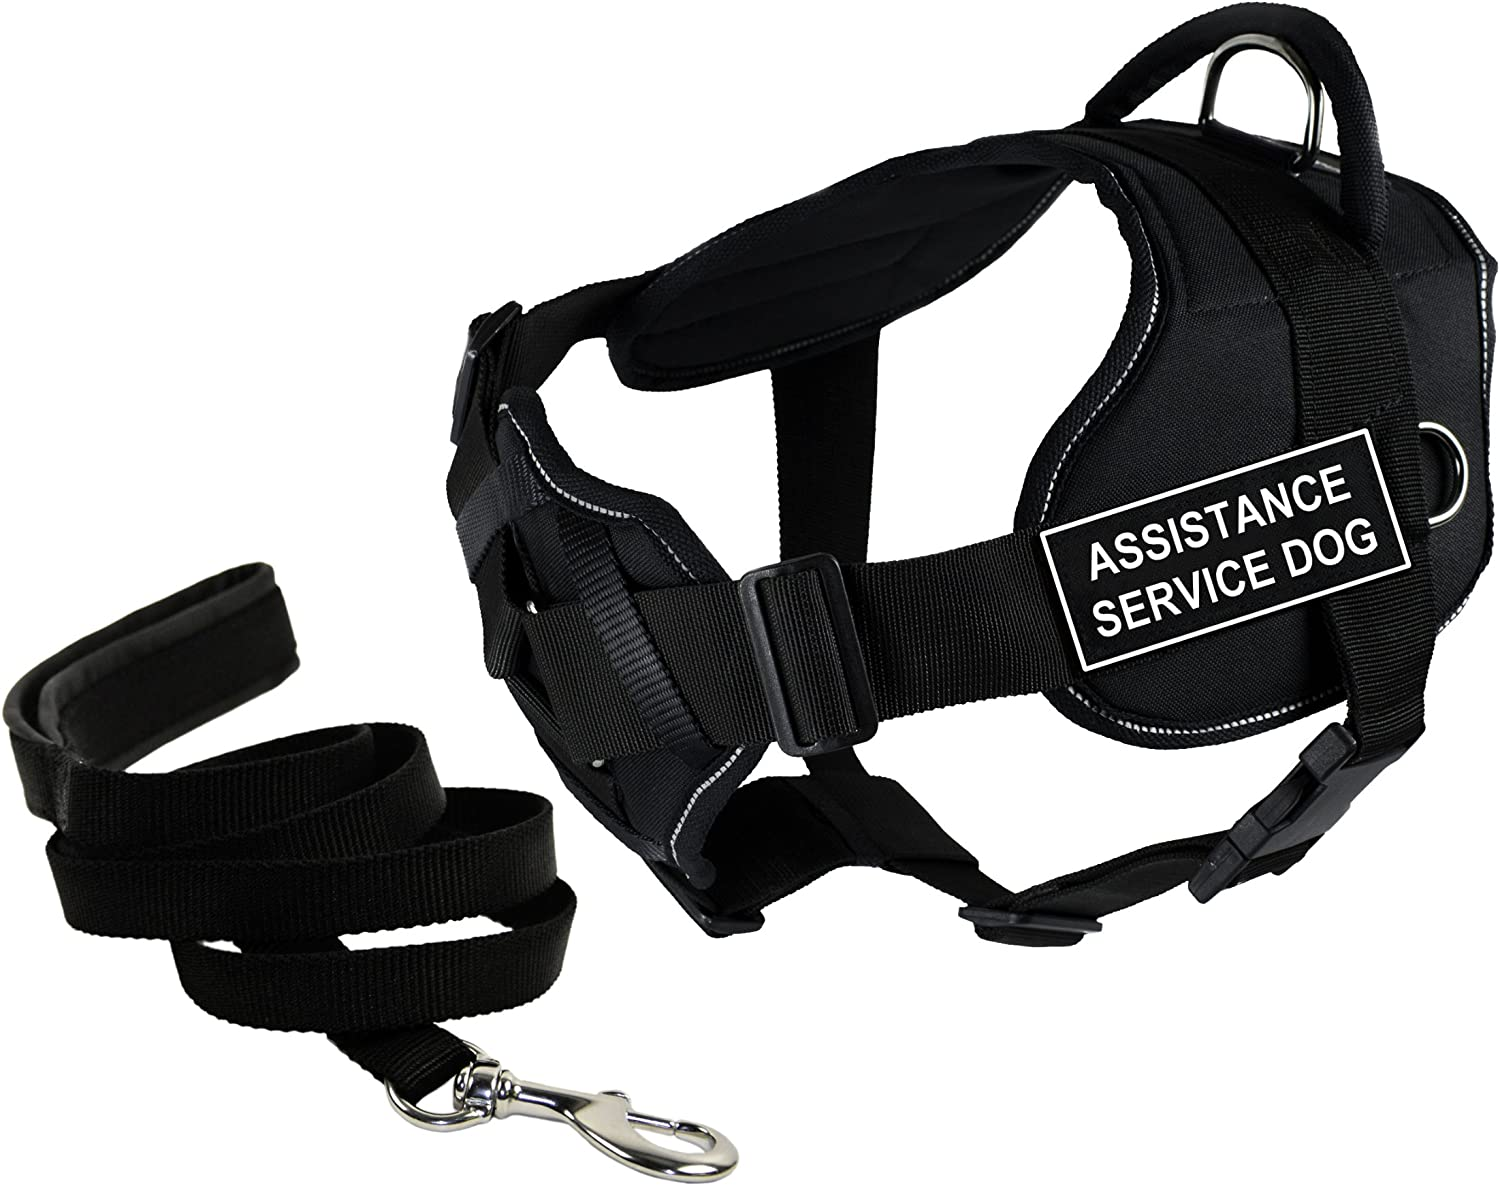 Dean & Tyler's DT Fun Chest Support ASSISTANCE SERVICE DOG Harness with Reflective Trim, Small, and 6 ft Padded Puppy Leash.